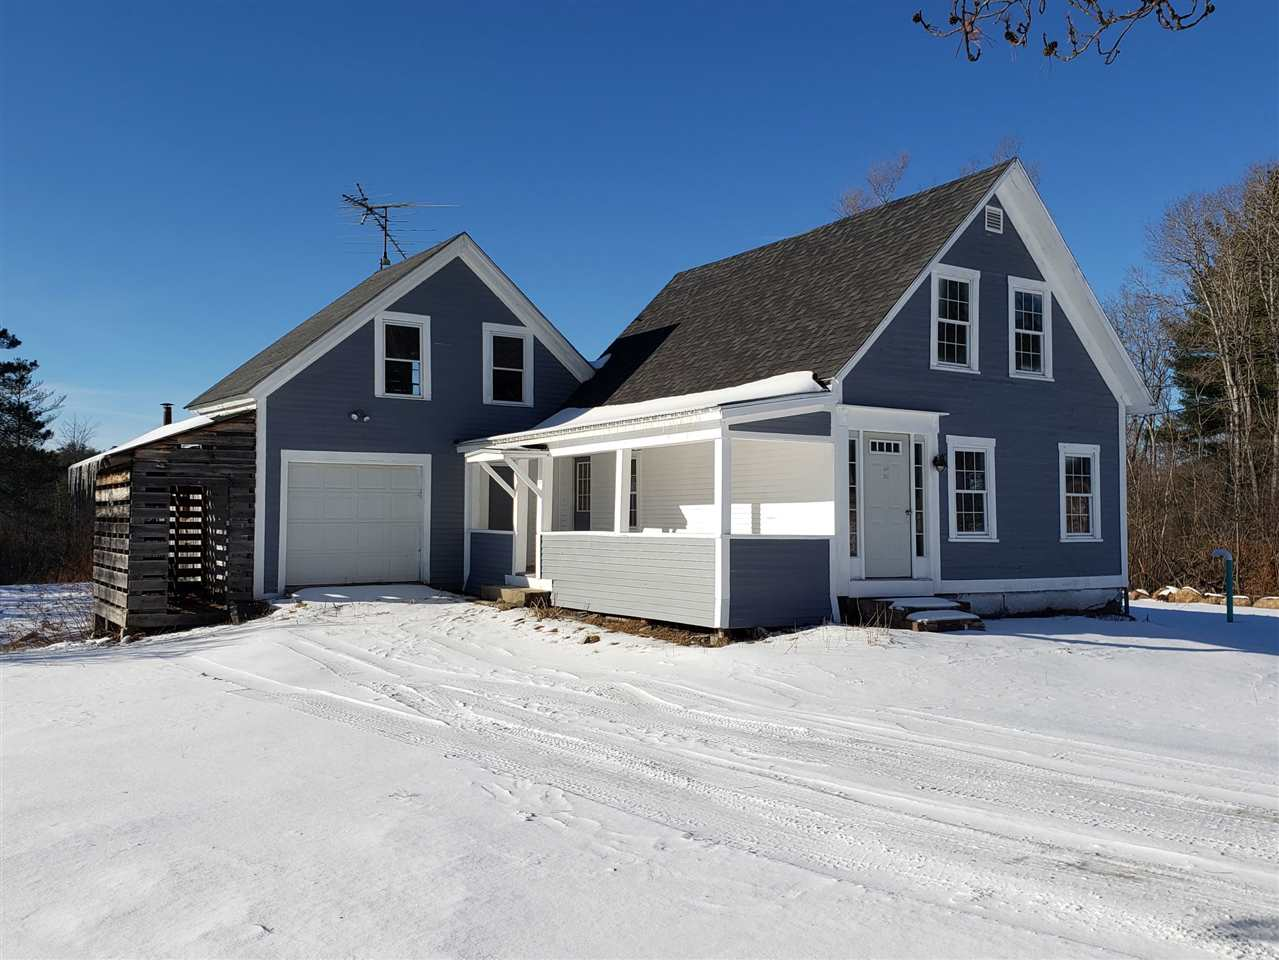 MLS 4790078: 575 Rte 10 Route, Marlow NH